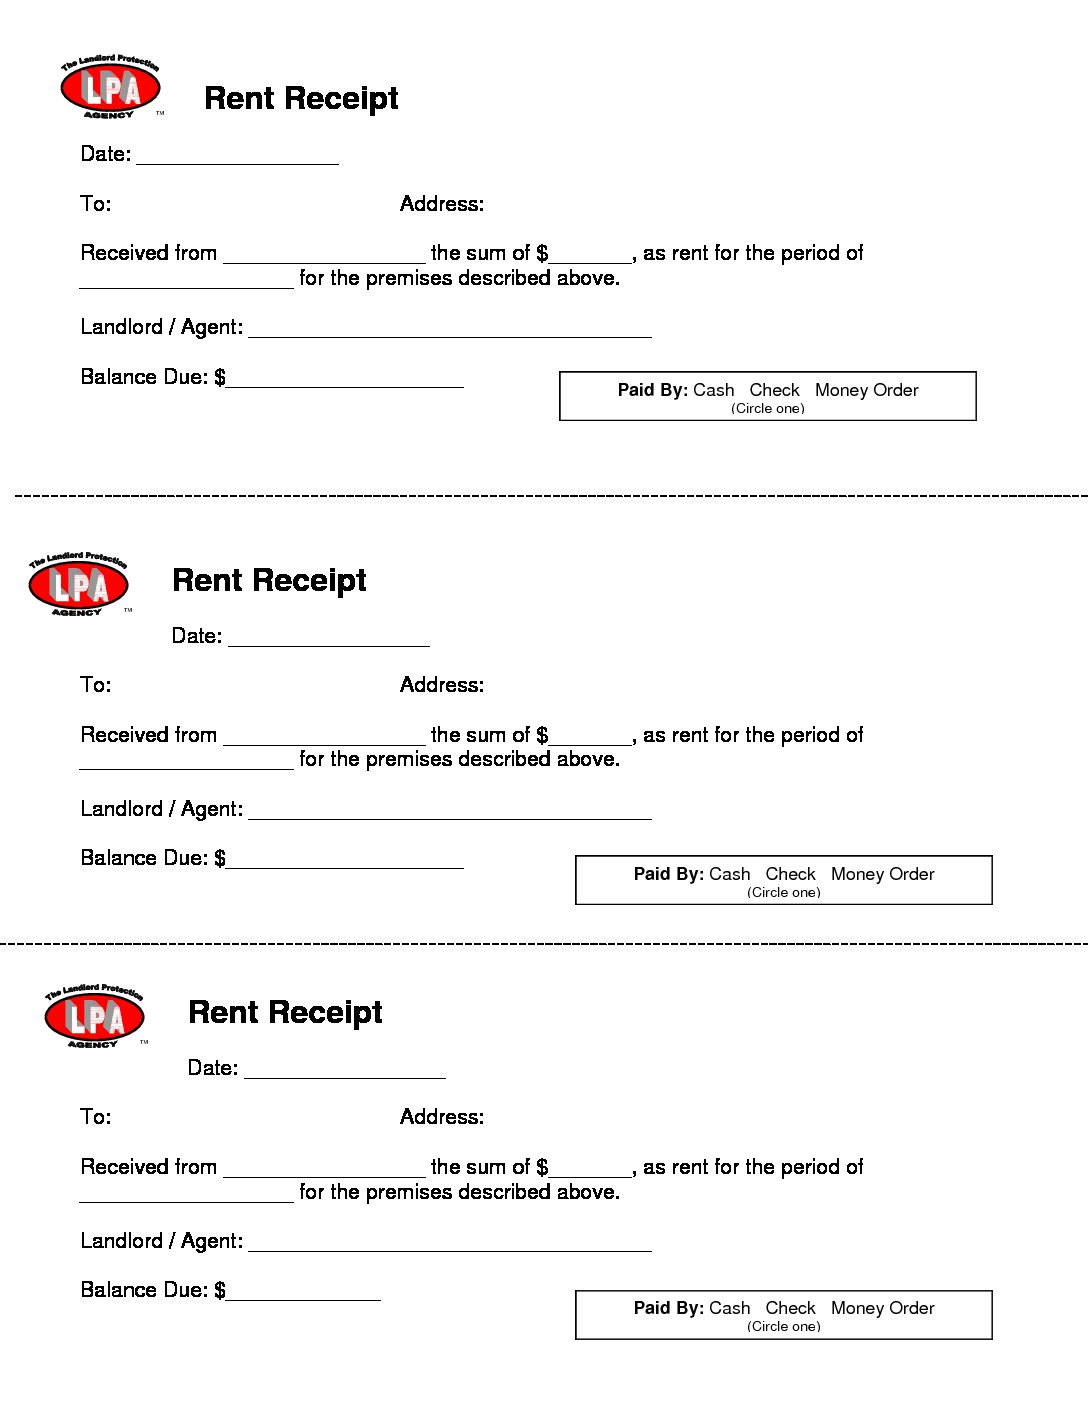 Free Rent Receipt Template and What Information to Include – Rent Receipt Format in Pdf